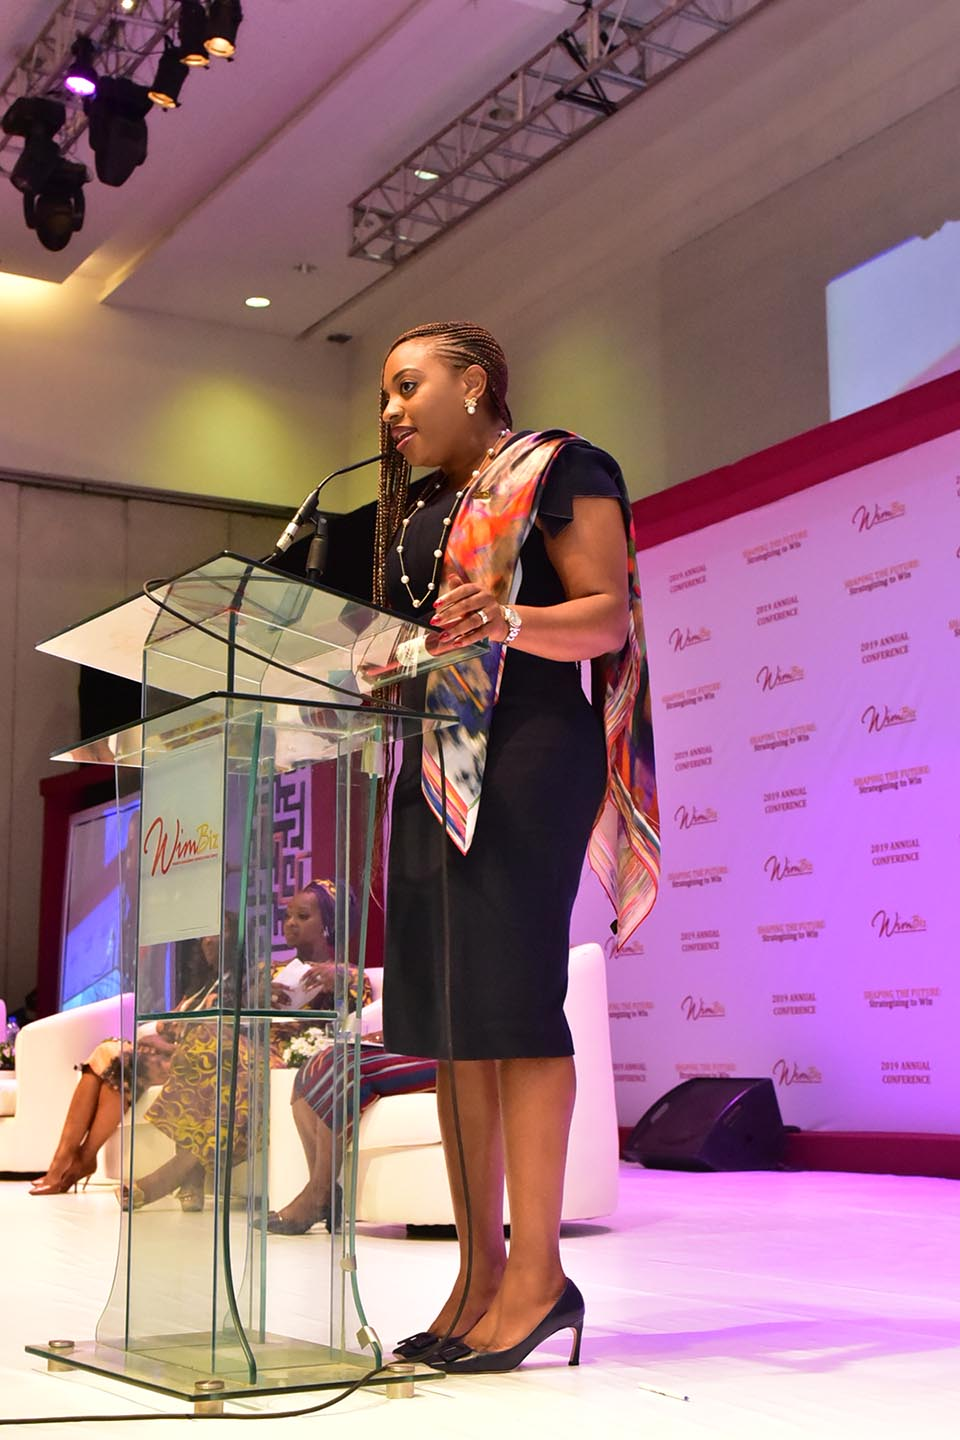 https://wimbizannualconference.com/wp-content/uploads/2020/12/gallery-img11.jpg